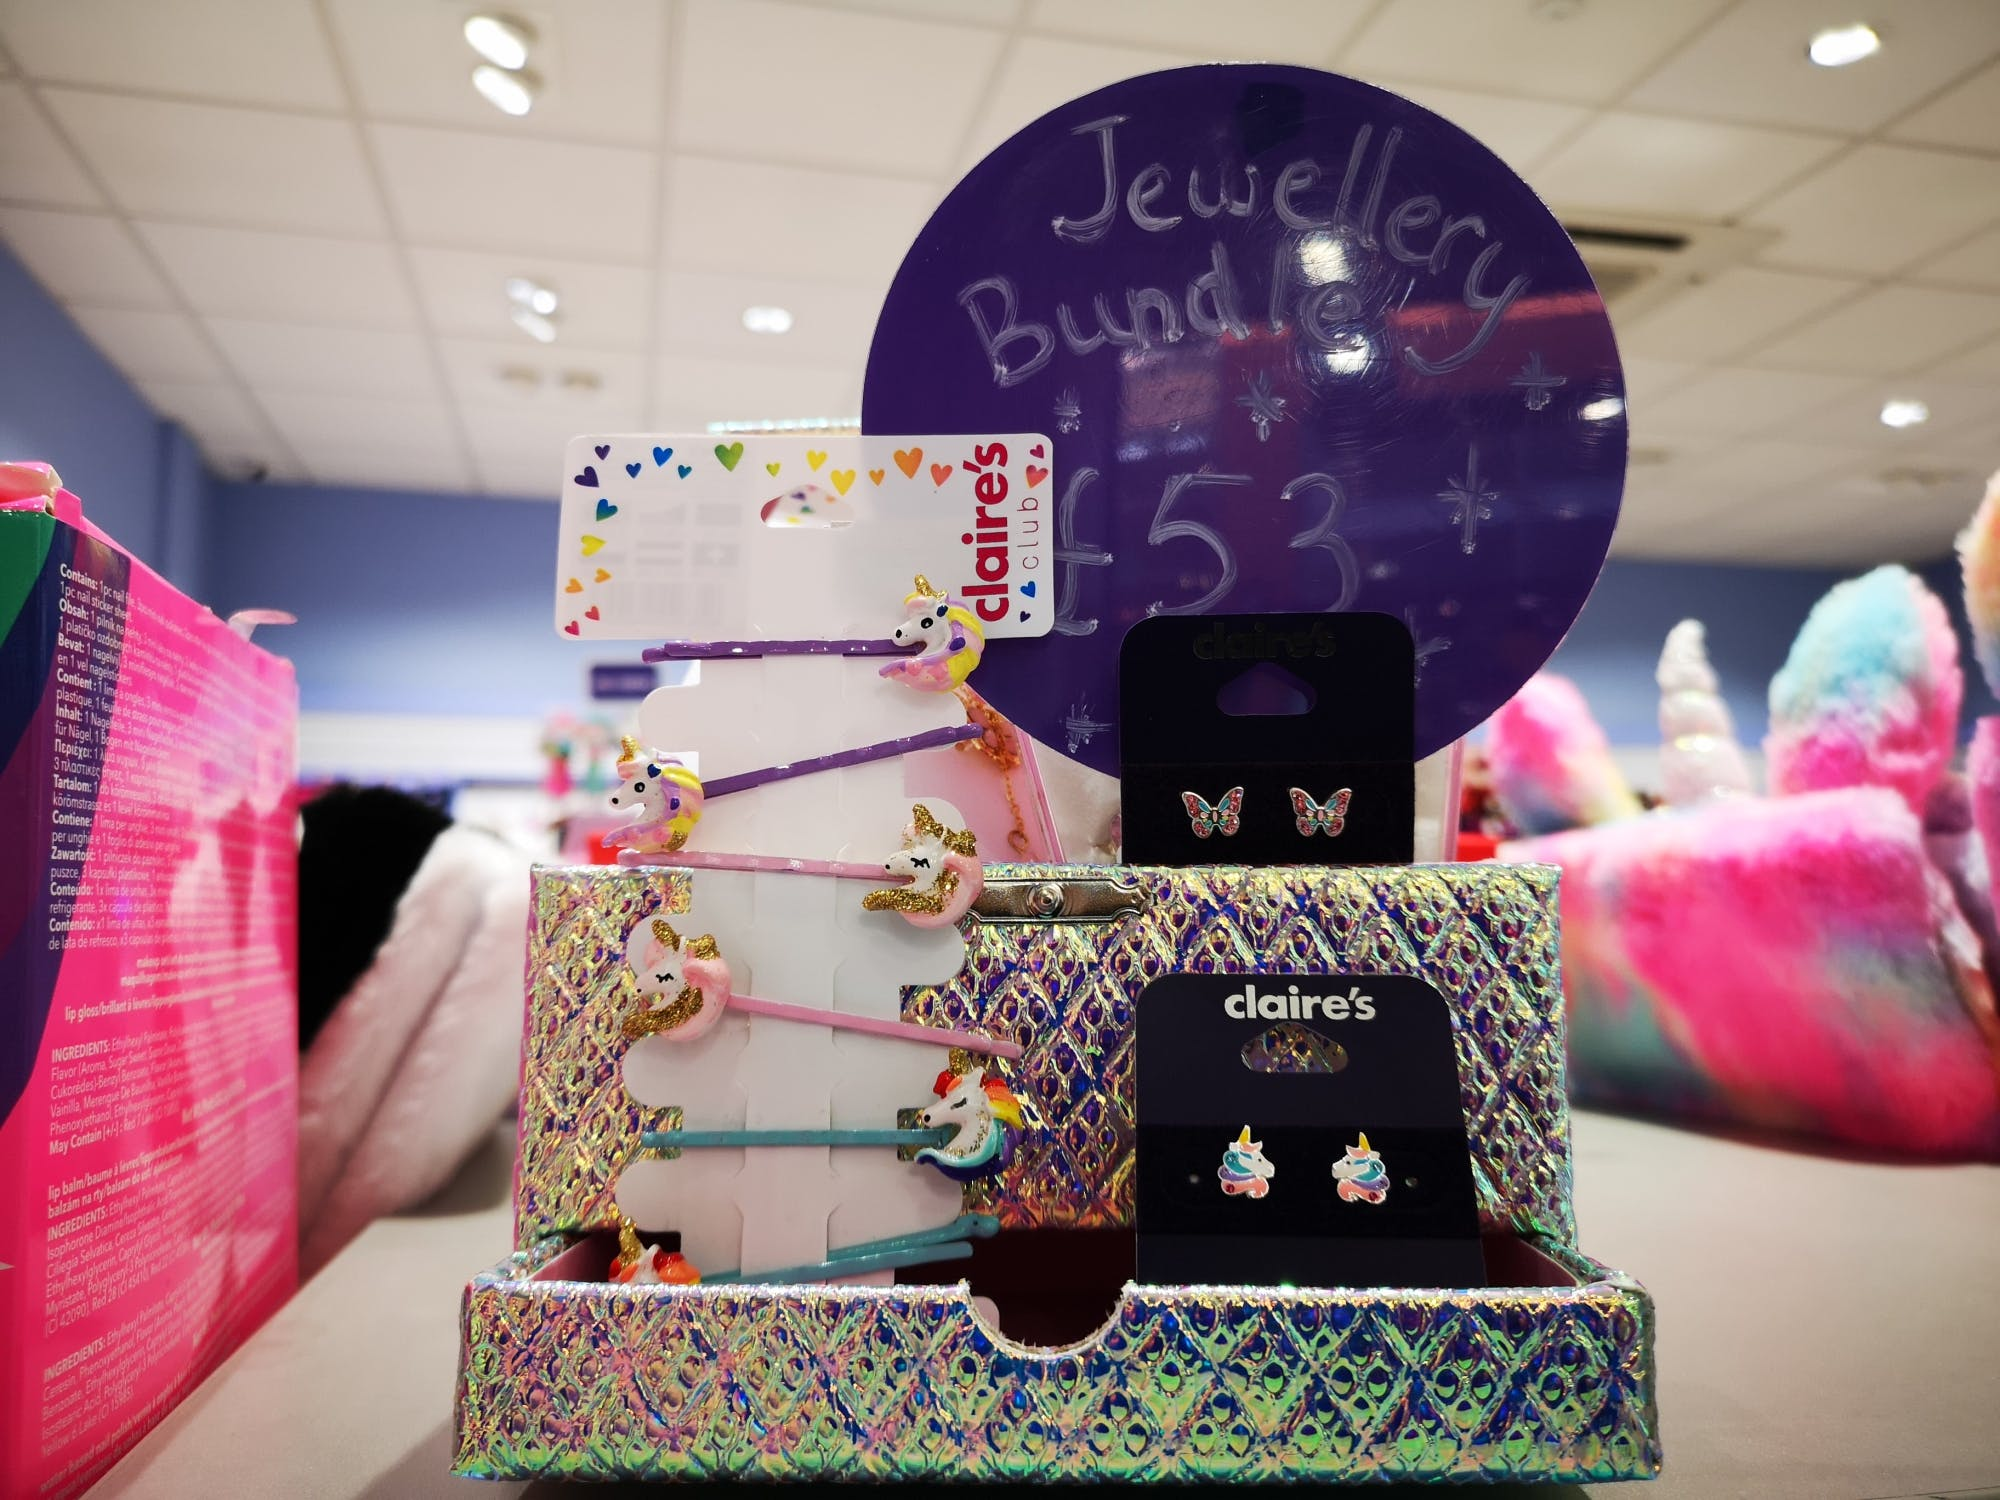 Claire has done it again! Mega bundle jewellery box, jewellery and more for £53.